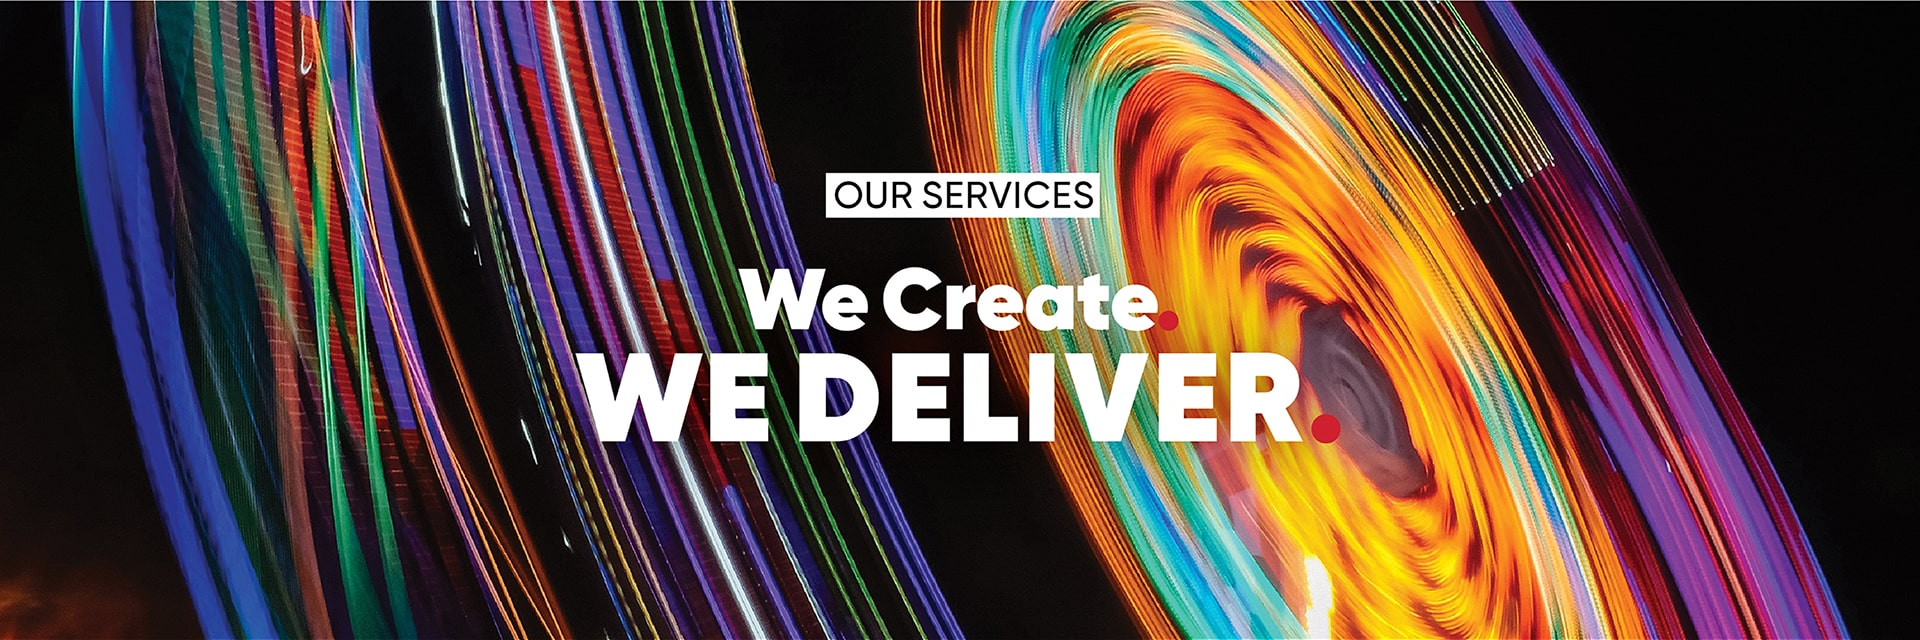 About - We Deliver